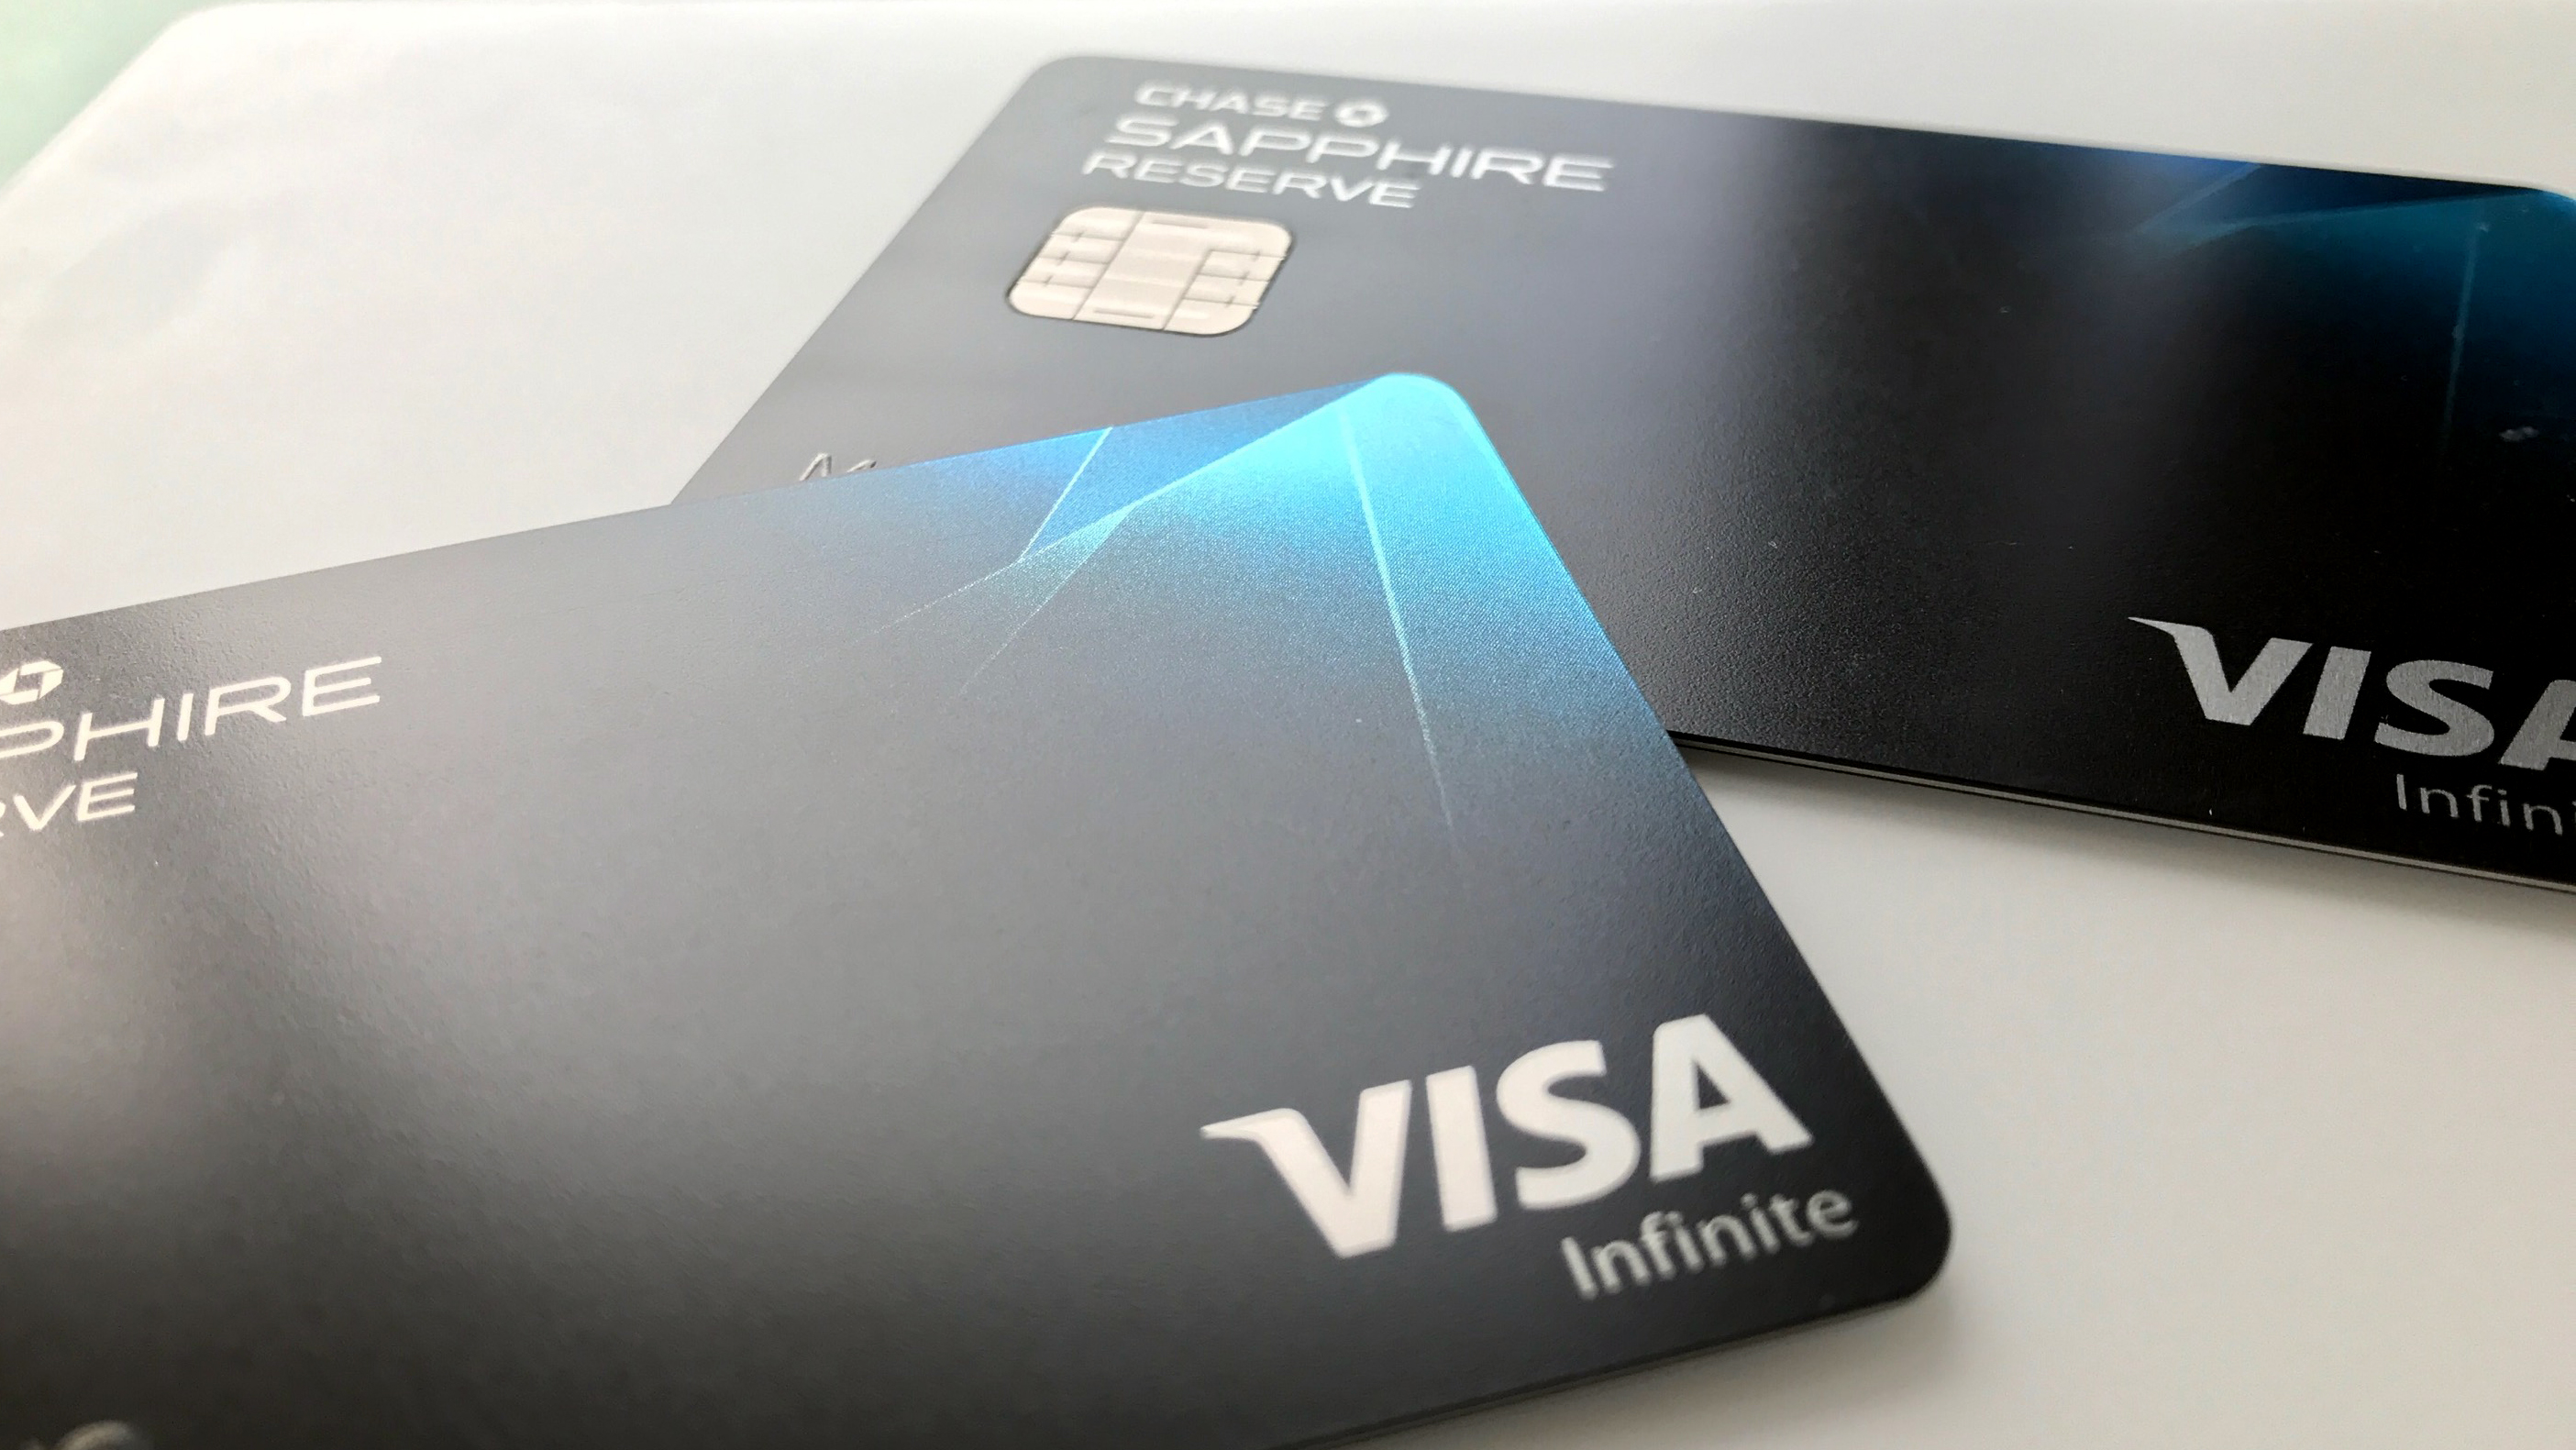 The Chase Sapphire Reserve credit card from JPMorgan Chase